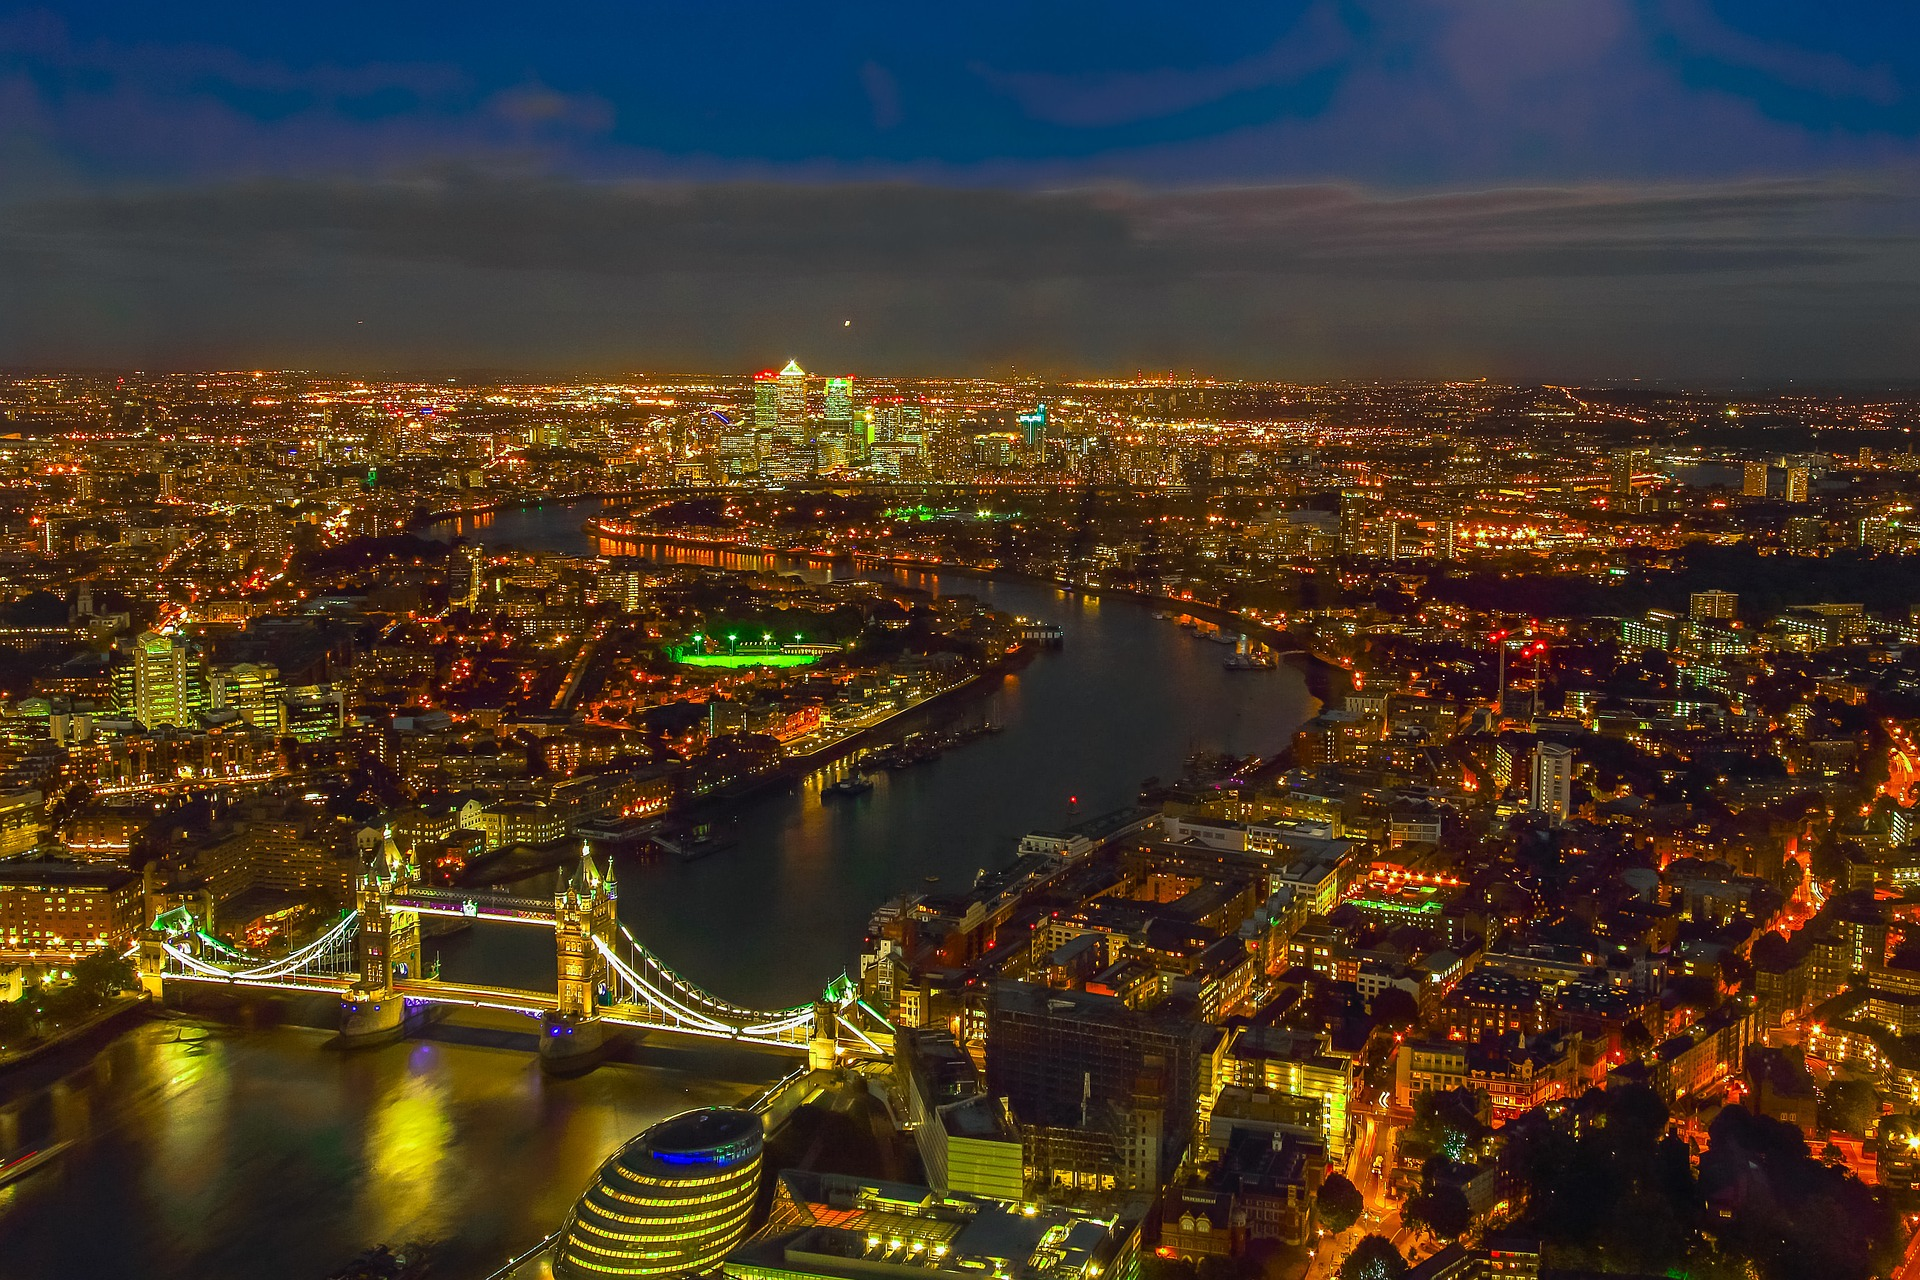 Aerial view of London, England at night